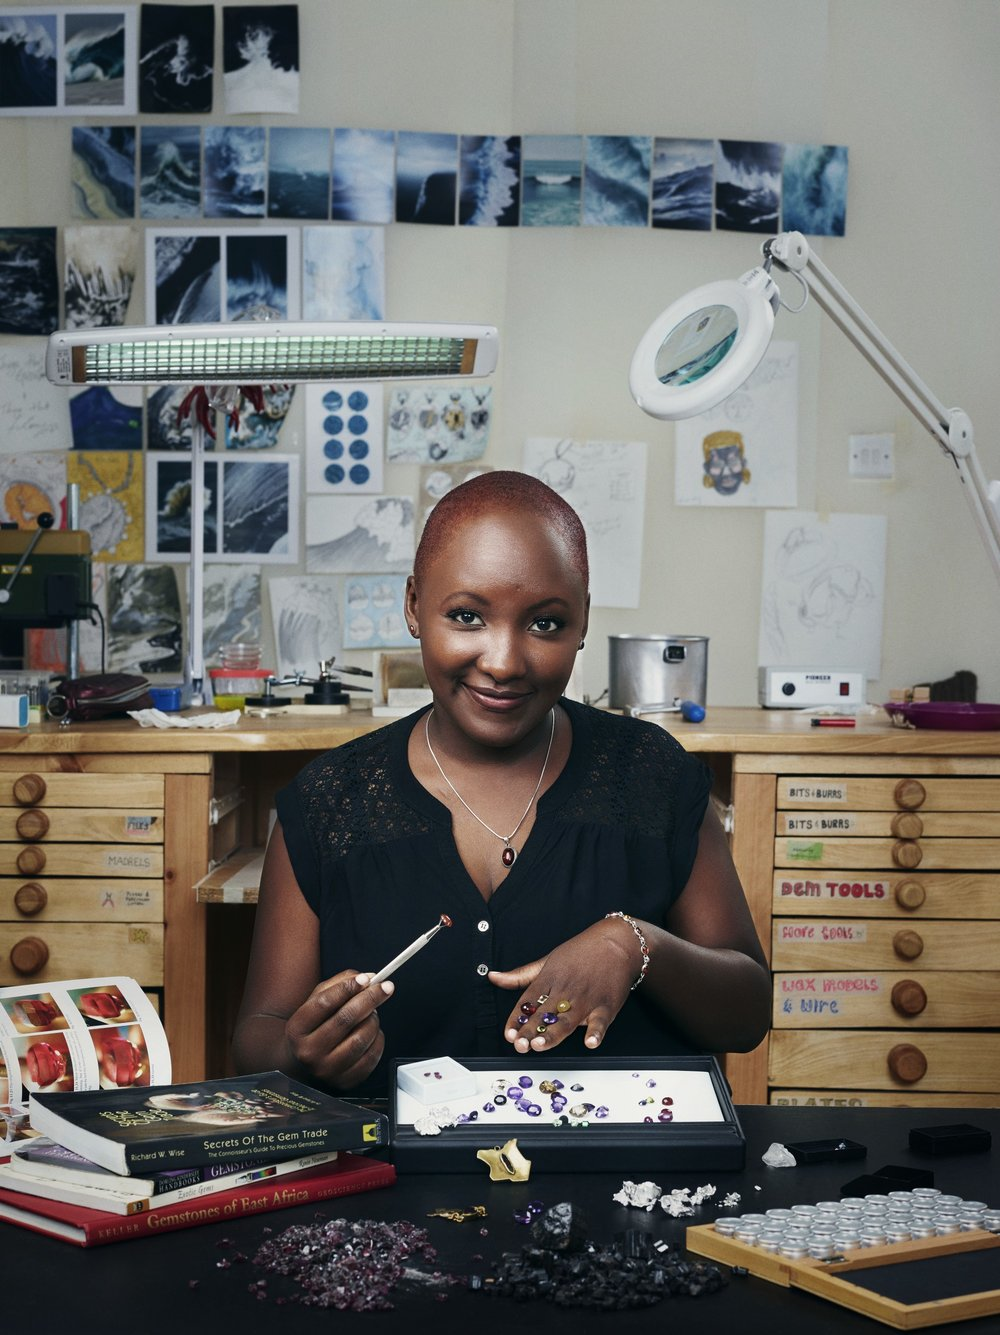 Gemologist Majala Mlagui at the studio where she turns ethically sourced gemstones into luxury jewelry. Photo Bret Hartman.